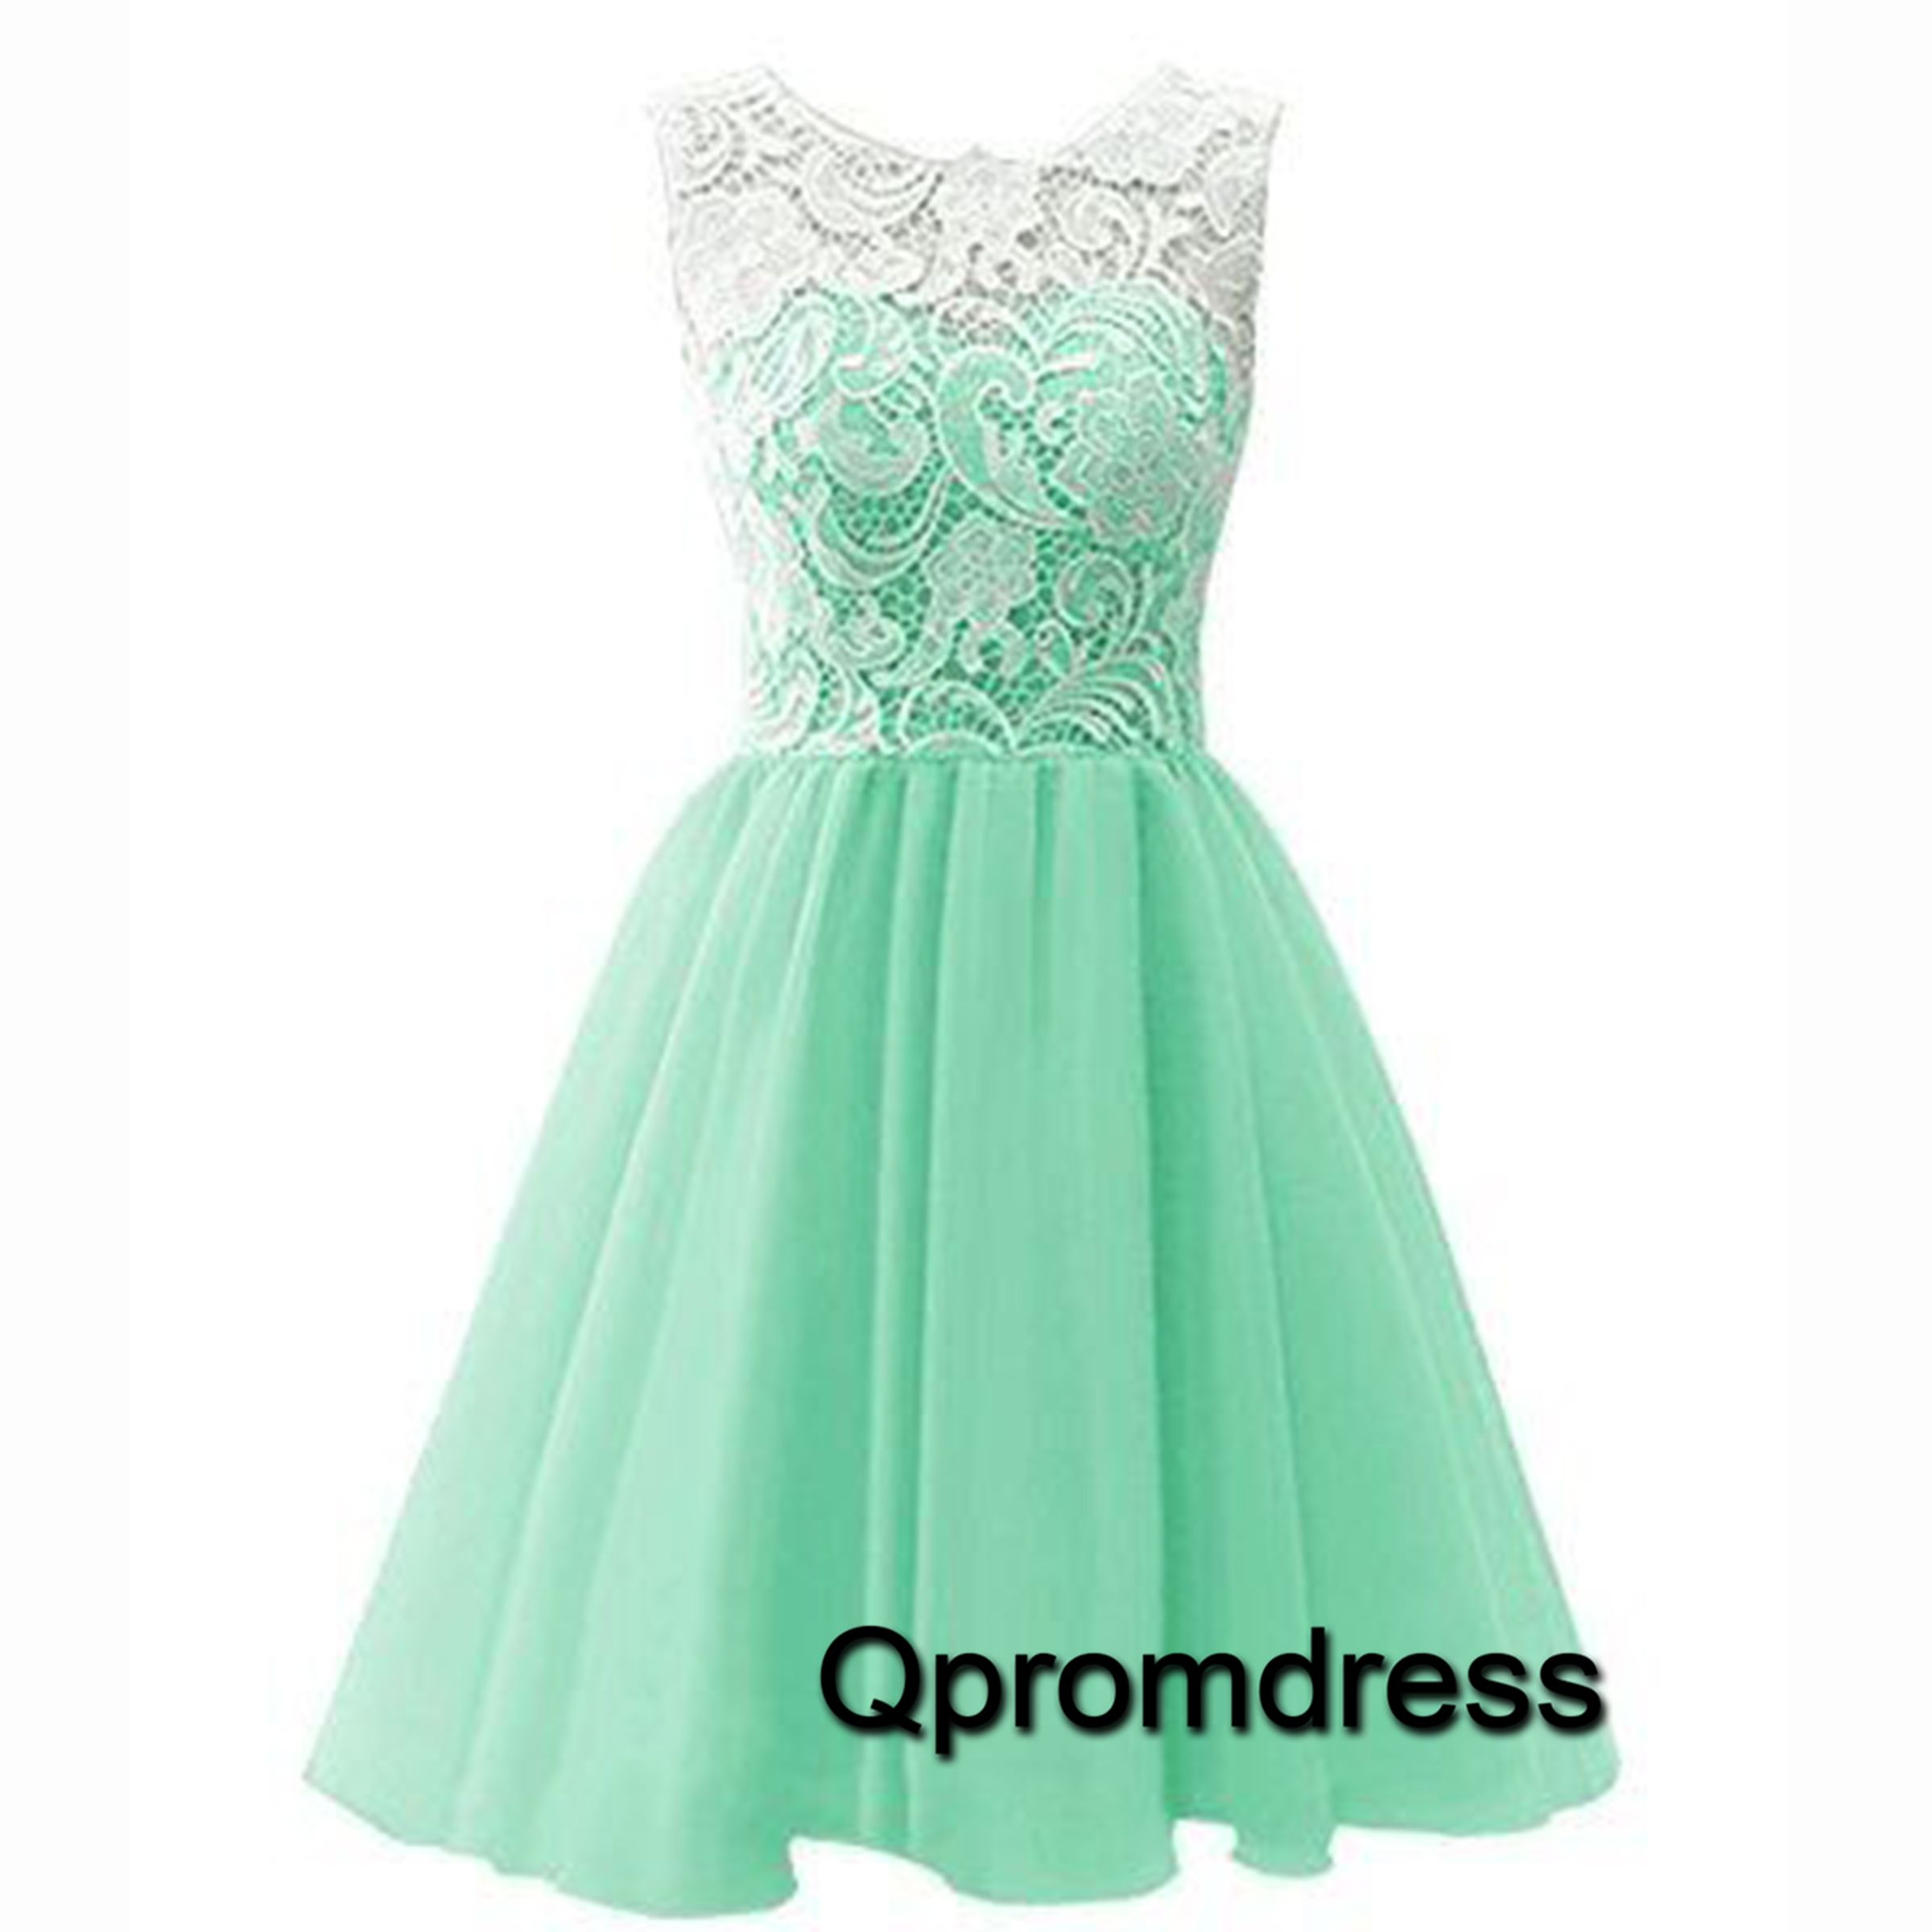 2016 cute green chiffon prom dress with lace top, vintage dress for ...